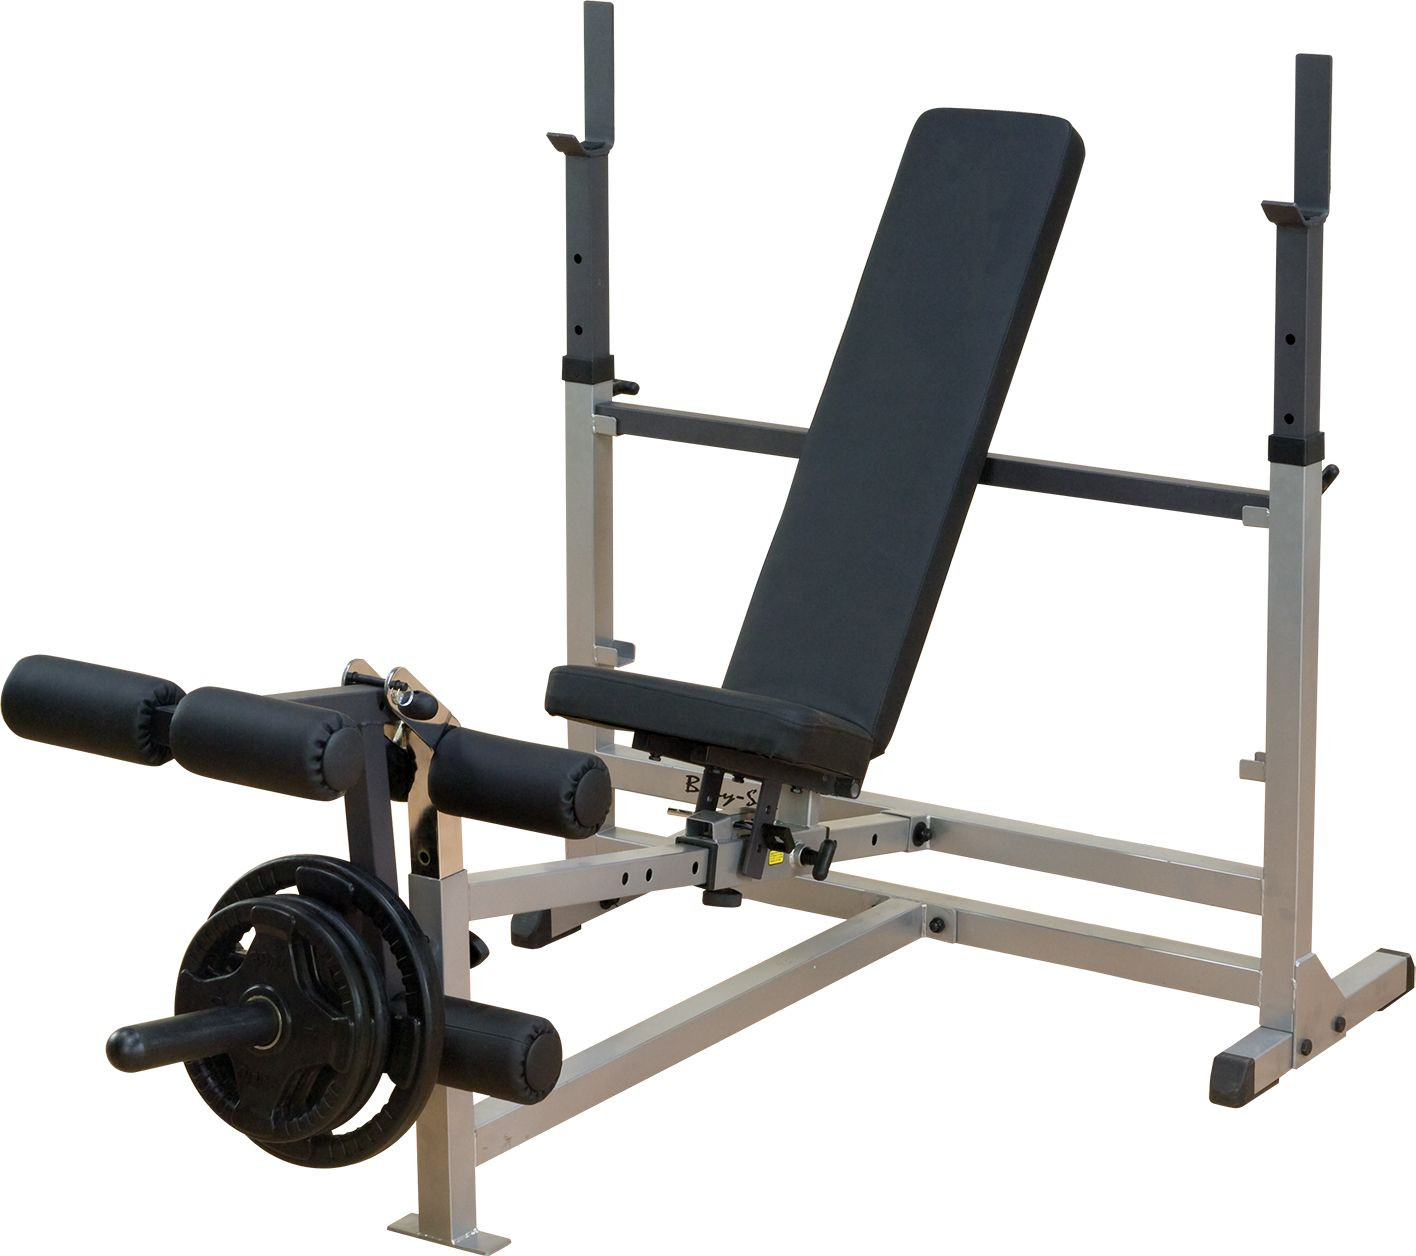 Body Solid Gdib46 L Olympic Weight Bench With Leg Developer by Body Solid